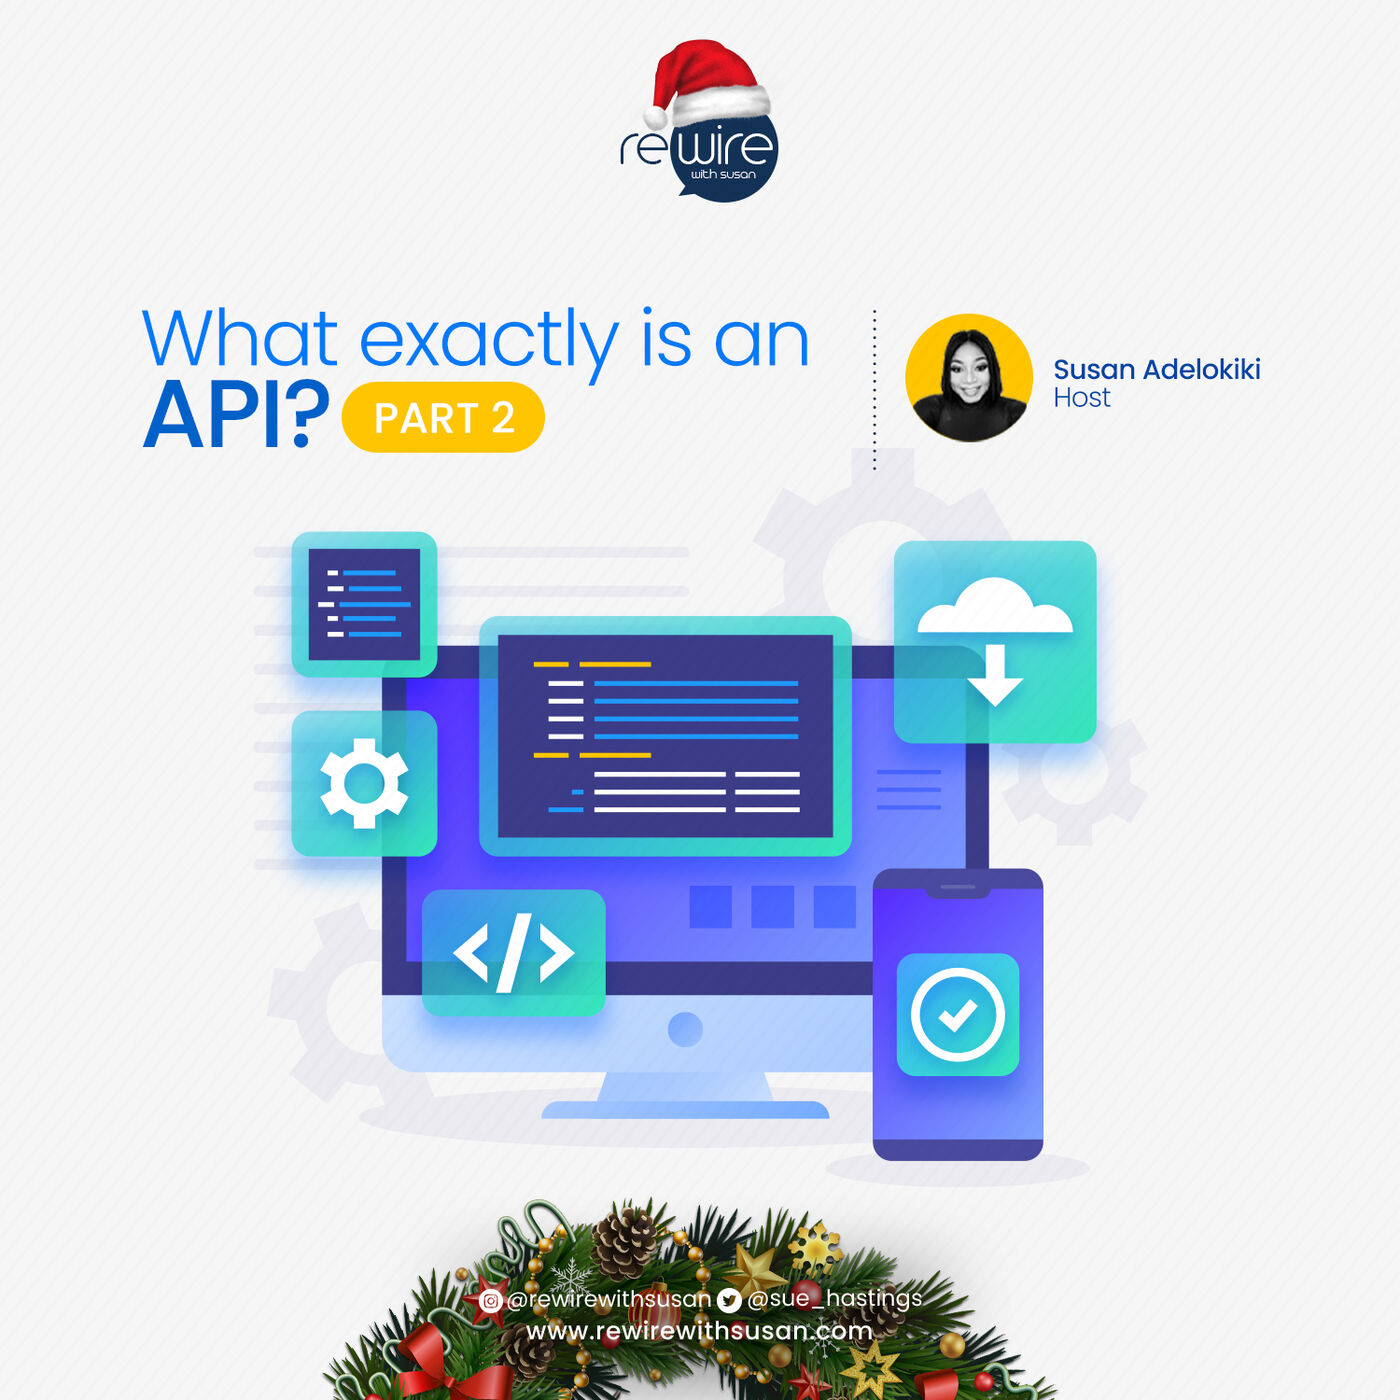 What exactly is an API ?(Part 2)